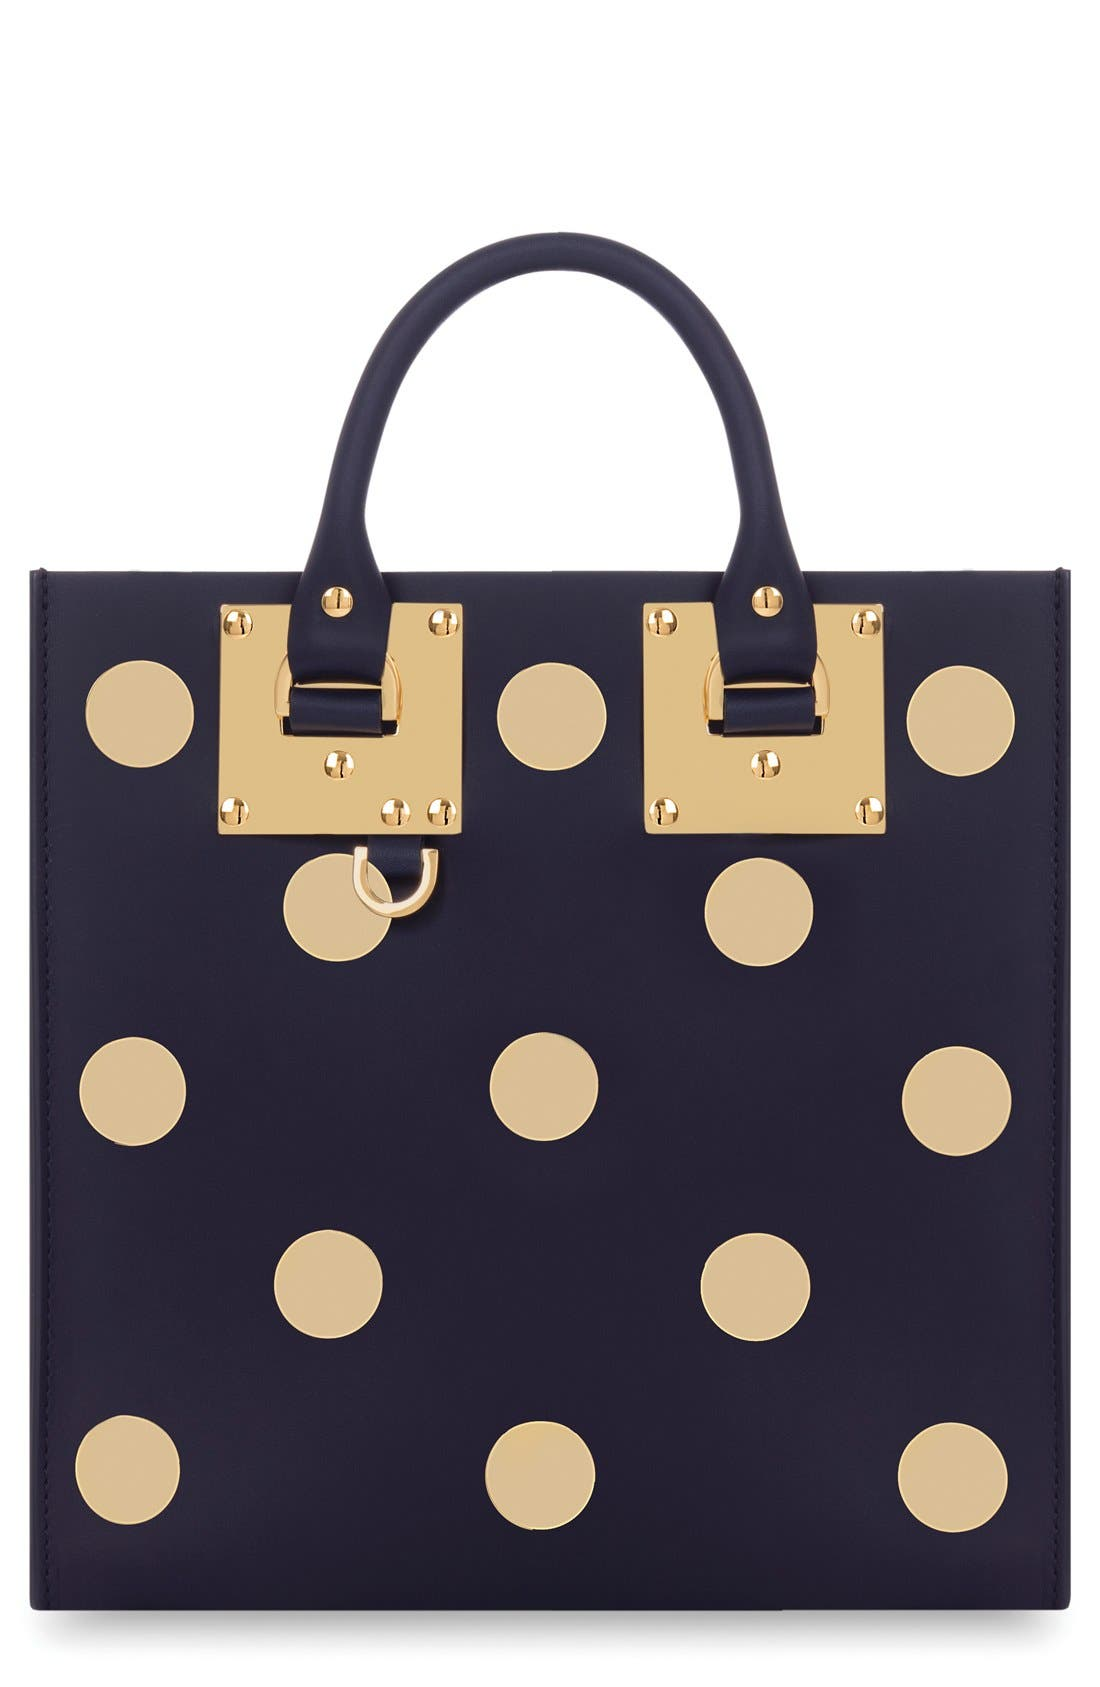 Main Image - Sophie Hulme 'Albion' Polka Dot Studded Leather Crossbody Bag